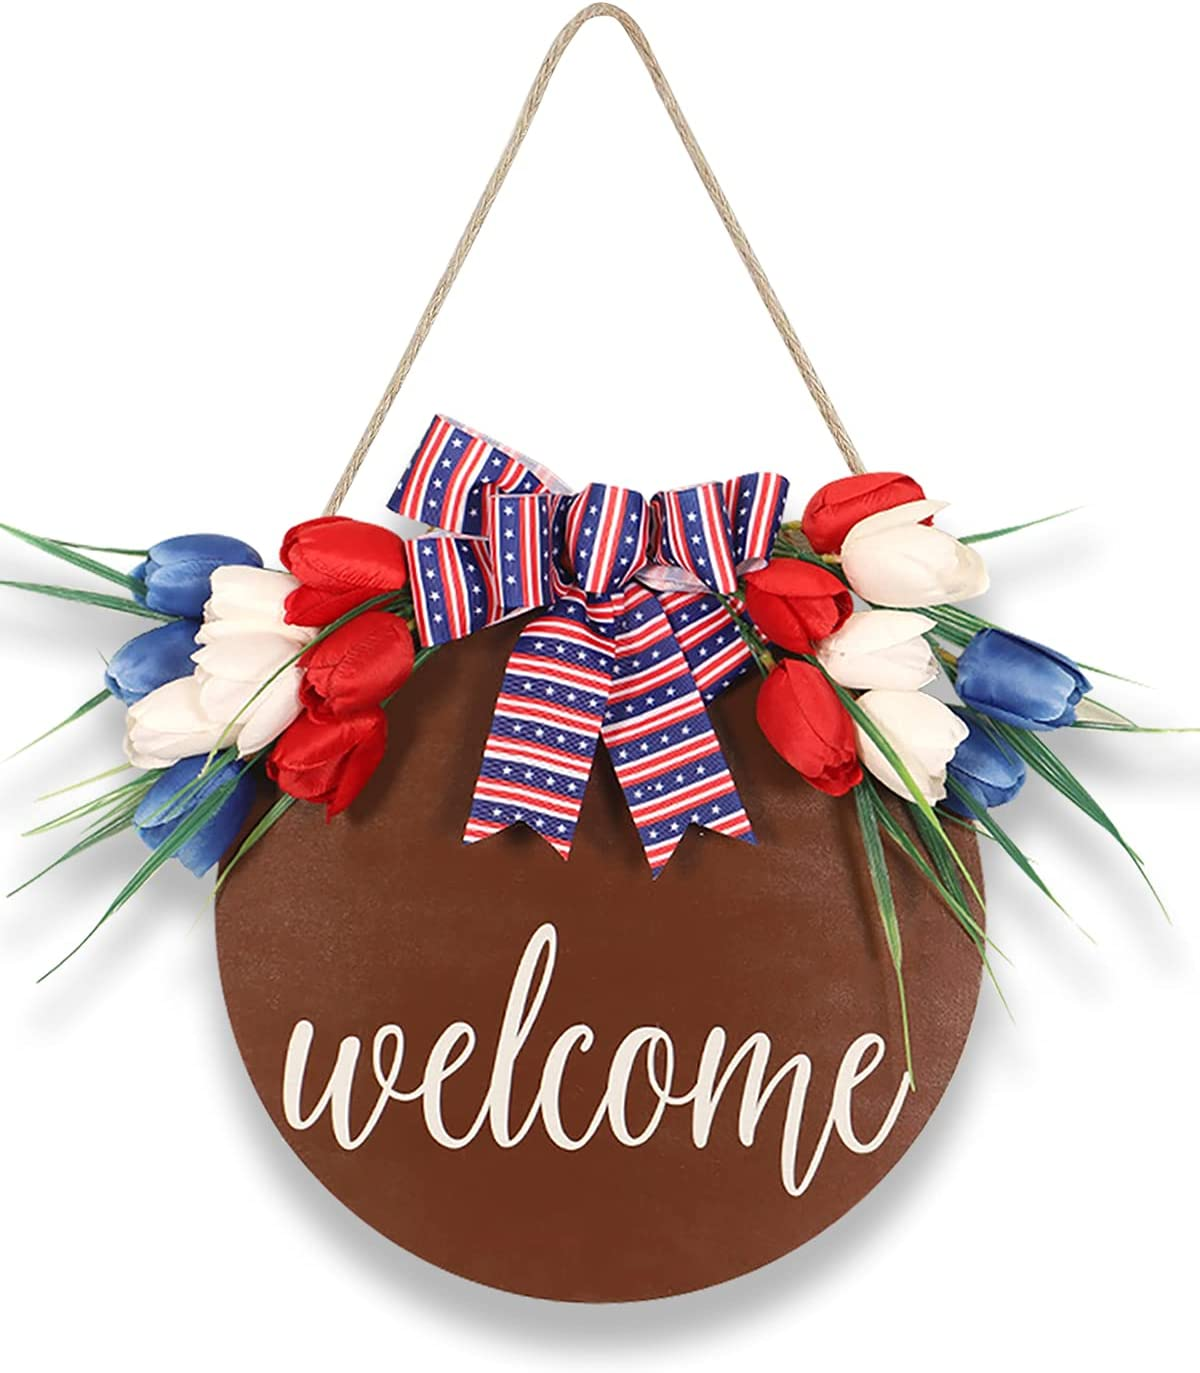 Halafs Welcome Sign for Front Door Decor, Wooden Handmade Front Door Sign, Front Porch Decor, Patriotic Sign for Front Door Outside, Christmas, Easter, Independence Day Welcome Decoration Ornaments